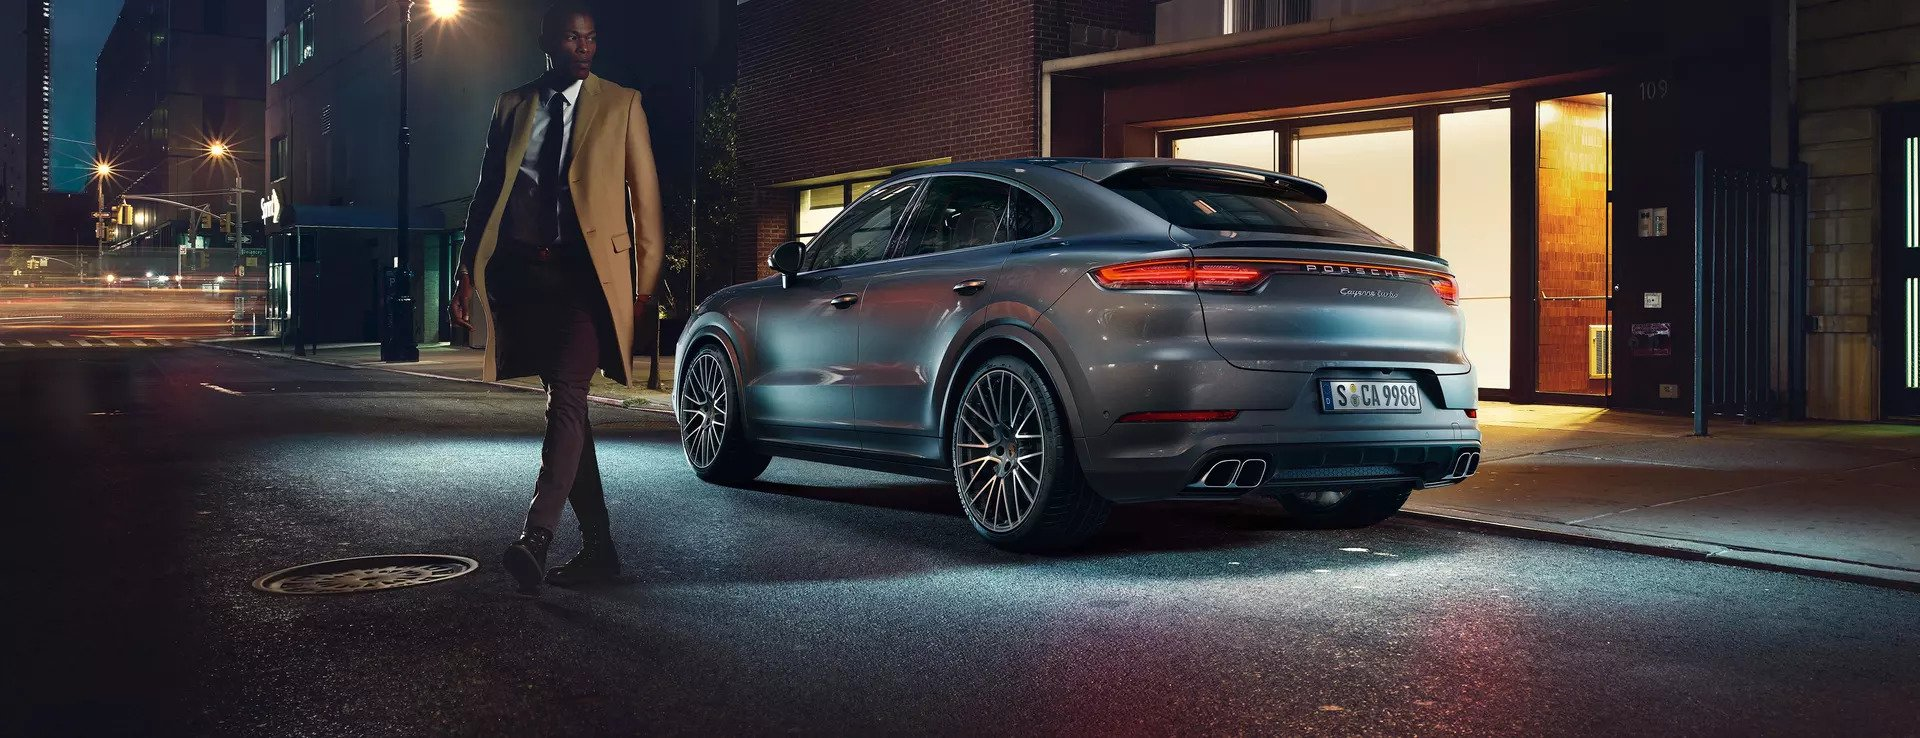 rd-2019-homepage-banner-ww-e3coupeturbo-kw15